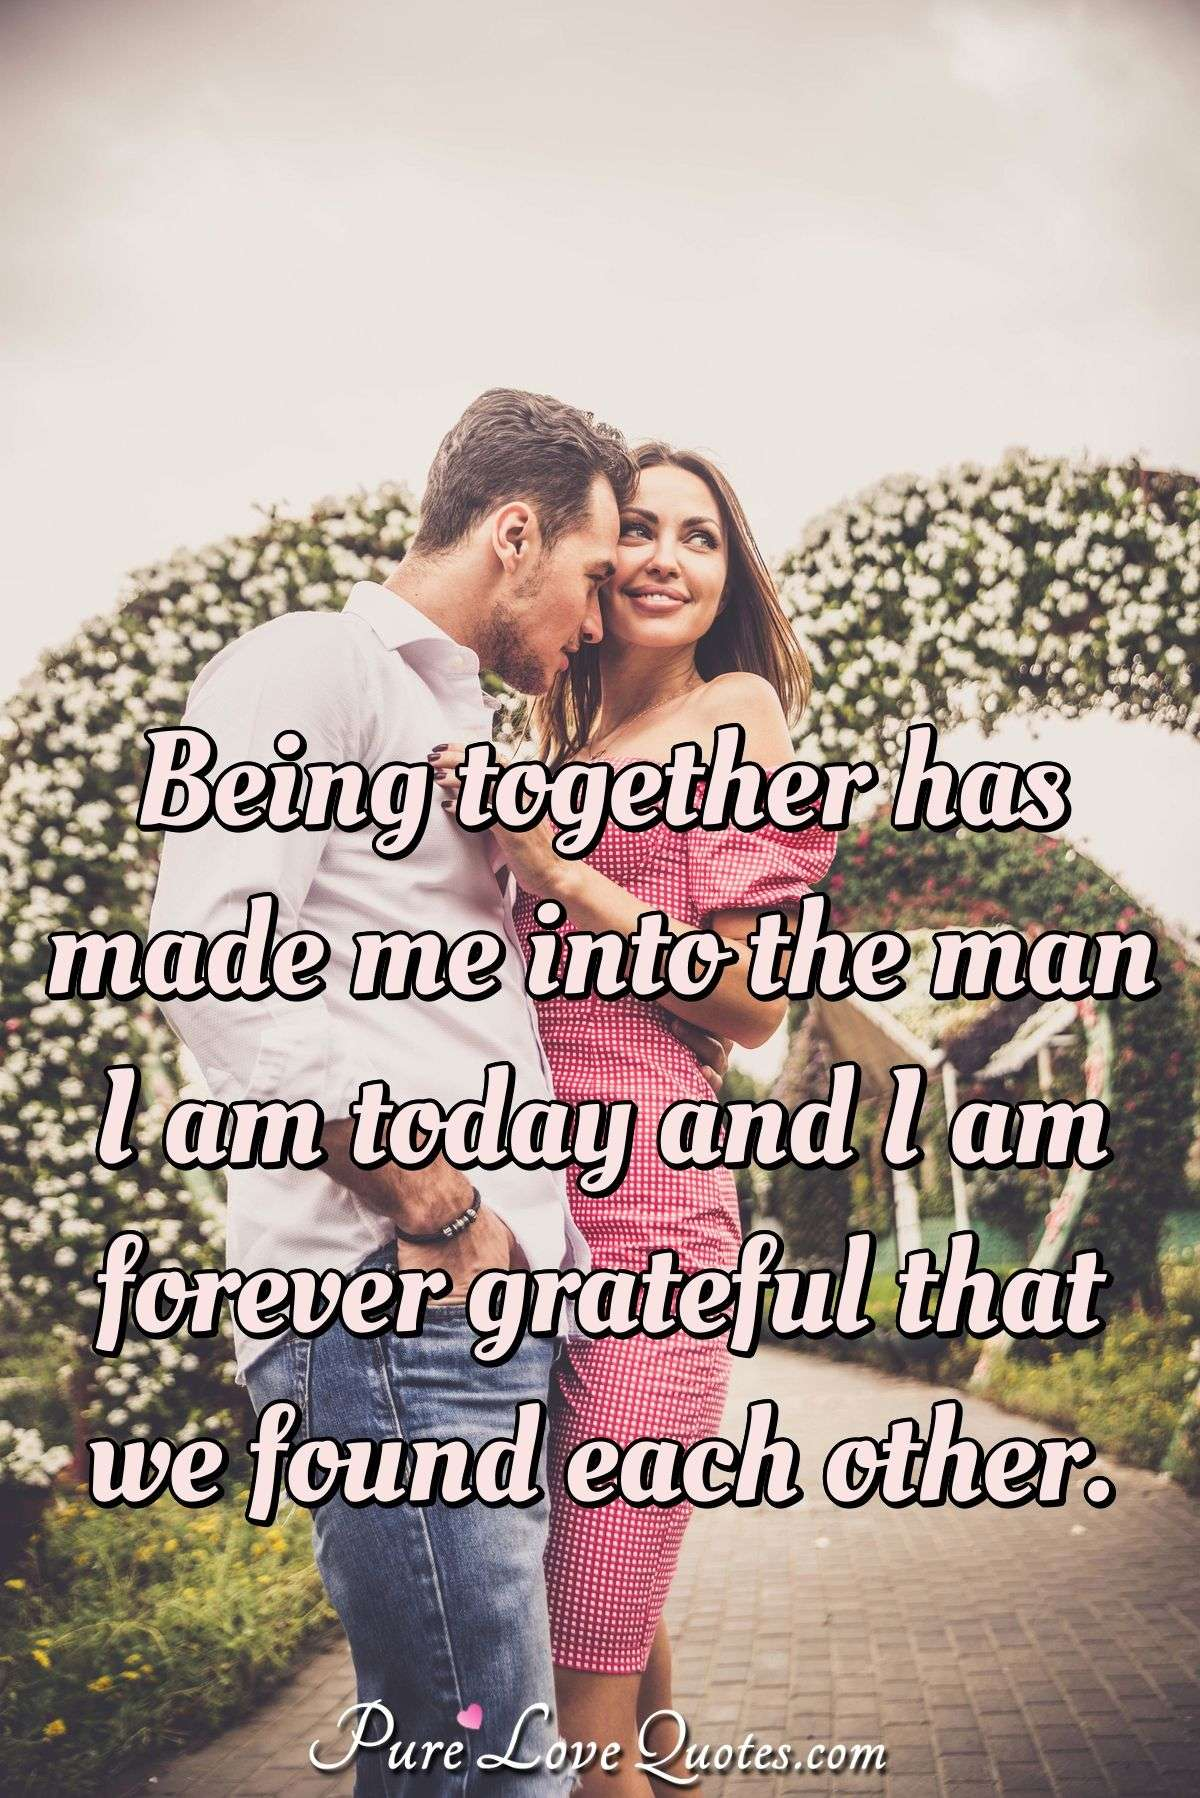 Being together has made me into the man I am today and I am forever grateful that we found each other. - PureLoveQuotes.com